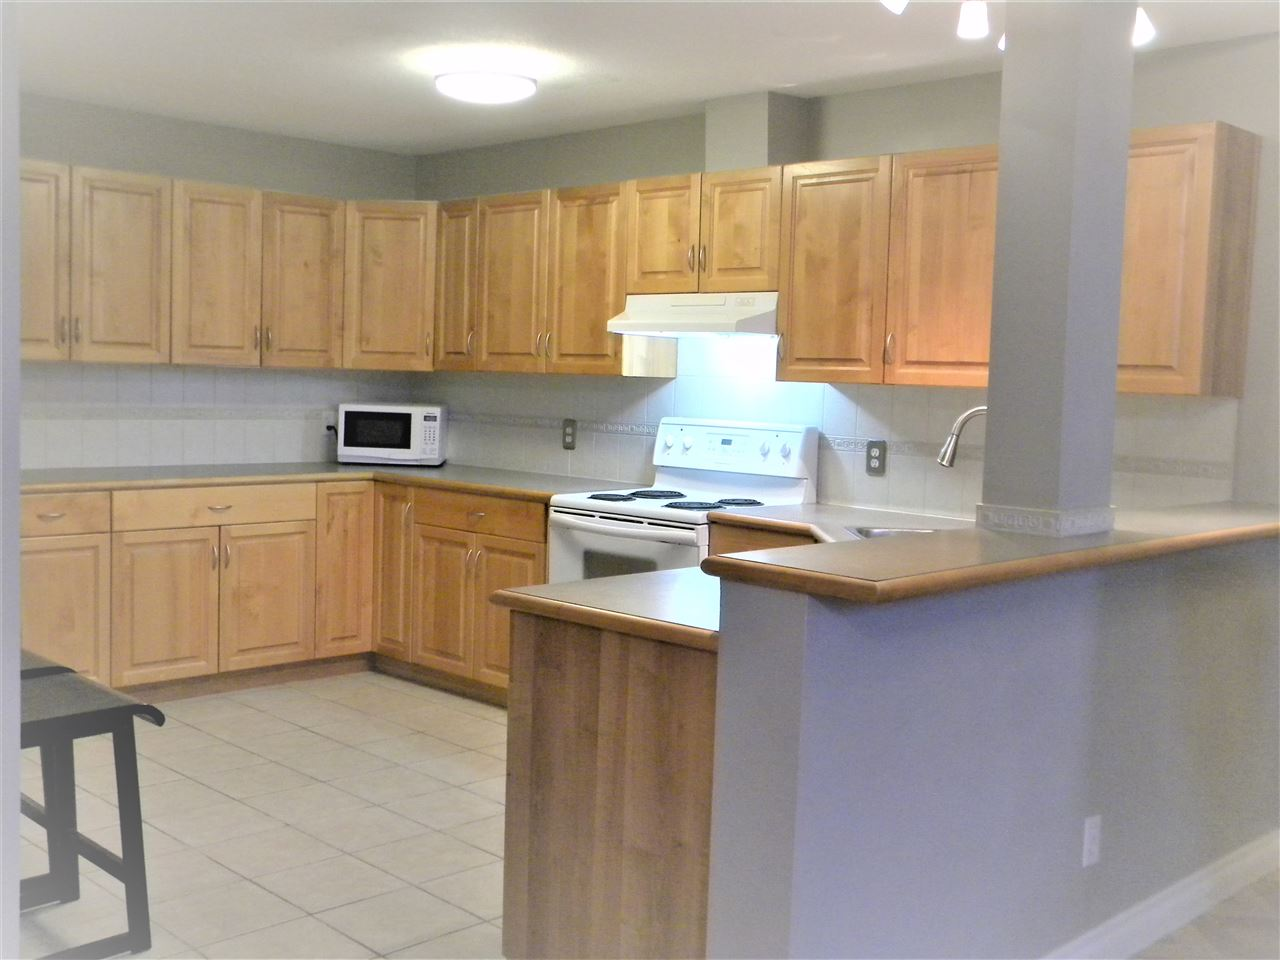 For Sale: 11033 127 Street Nw, Edmonton, AB | 1 Bed, 1 Bath Condo for $250,000. See 10 photos!